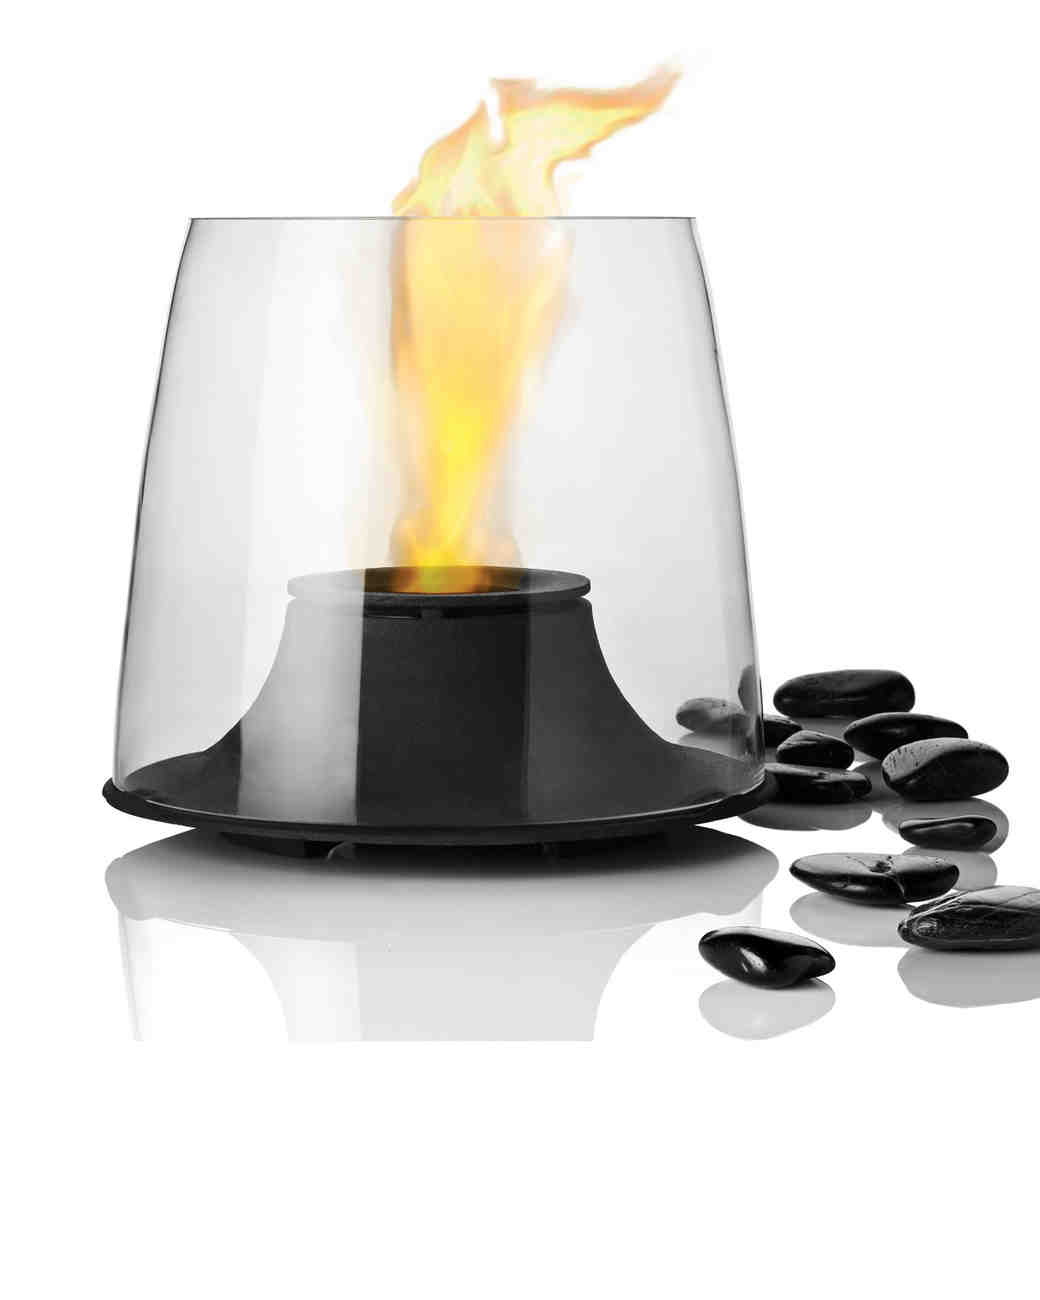 fathers-gift-guide-decor-stelton-fuego-0515.jpg